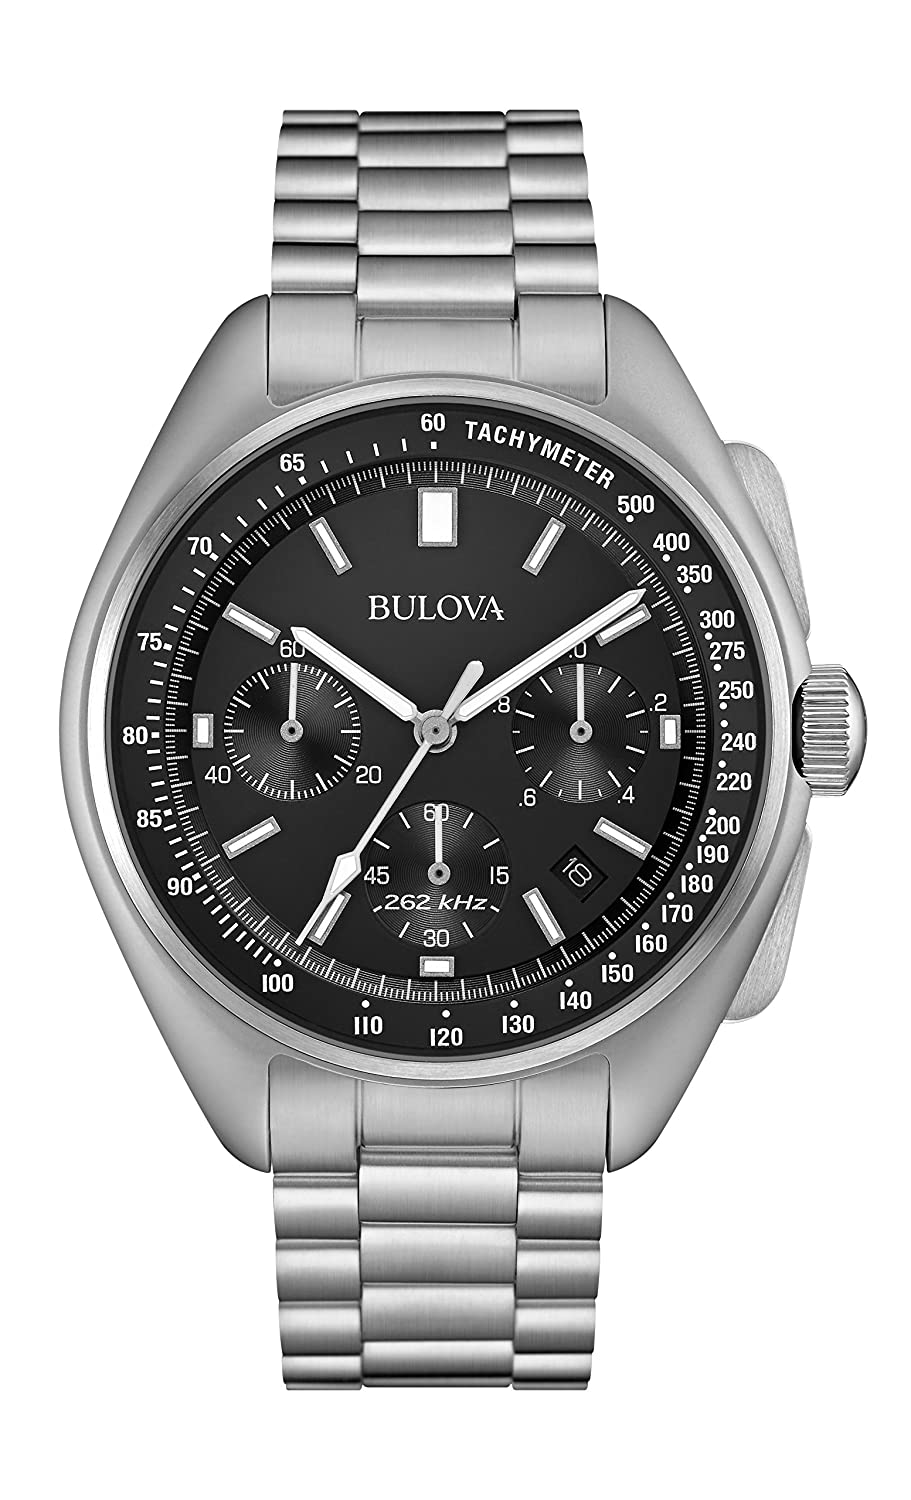 0eca8687d49a Amazon.com  Bulova Men s Lunar Pilot Chronograph Watch 96B258  Watches